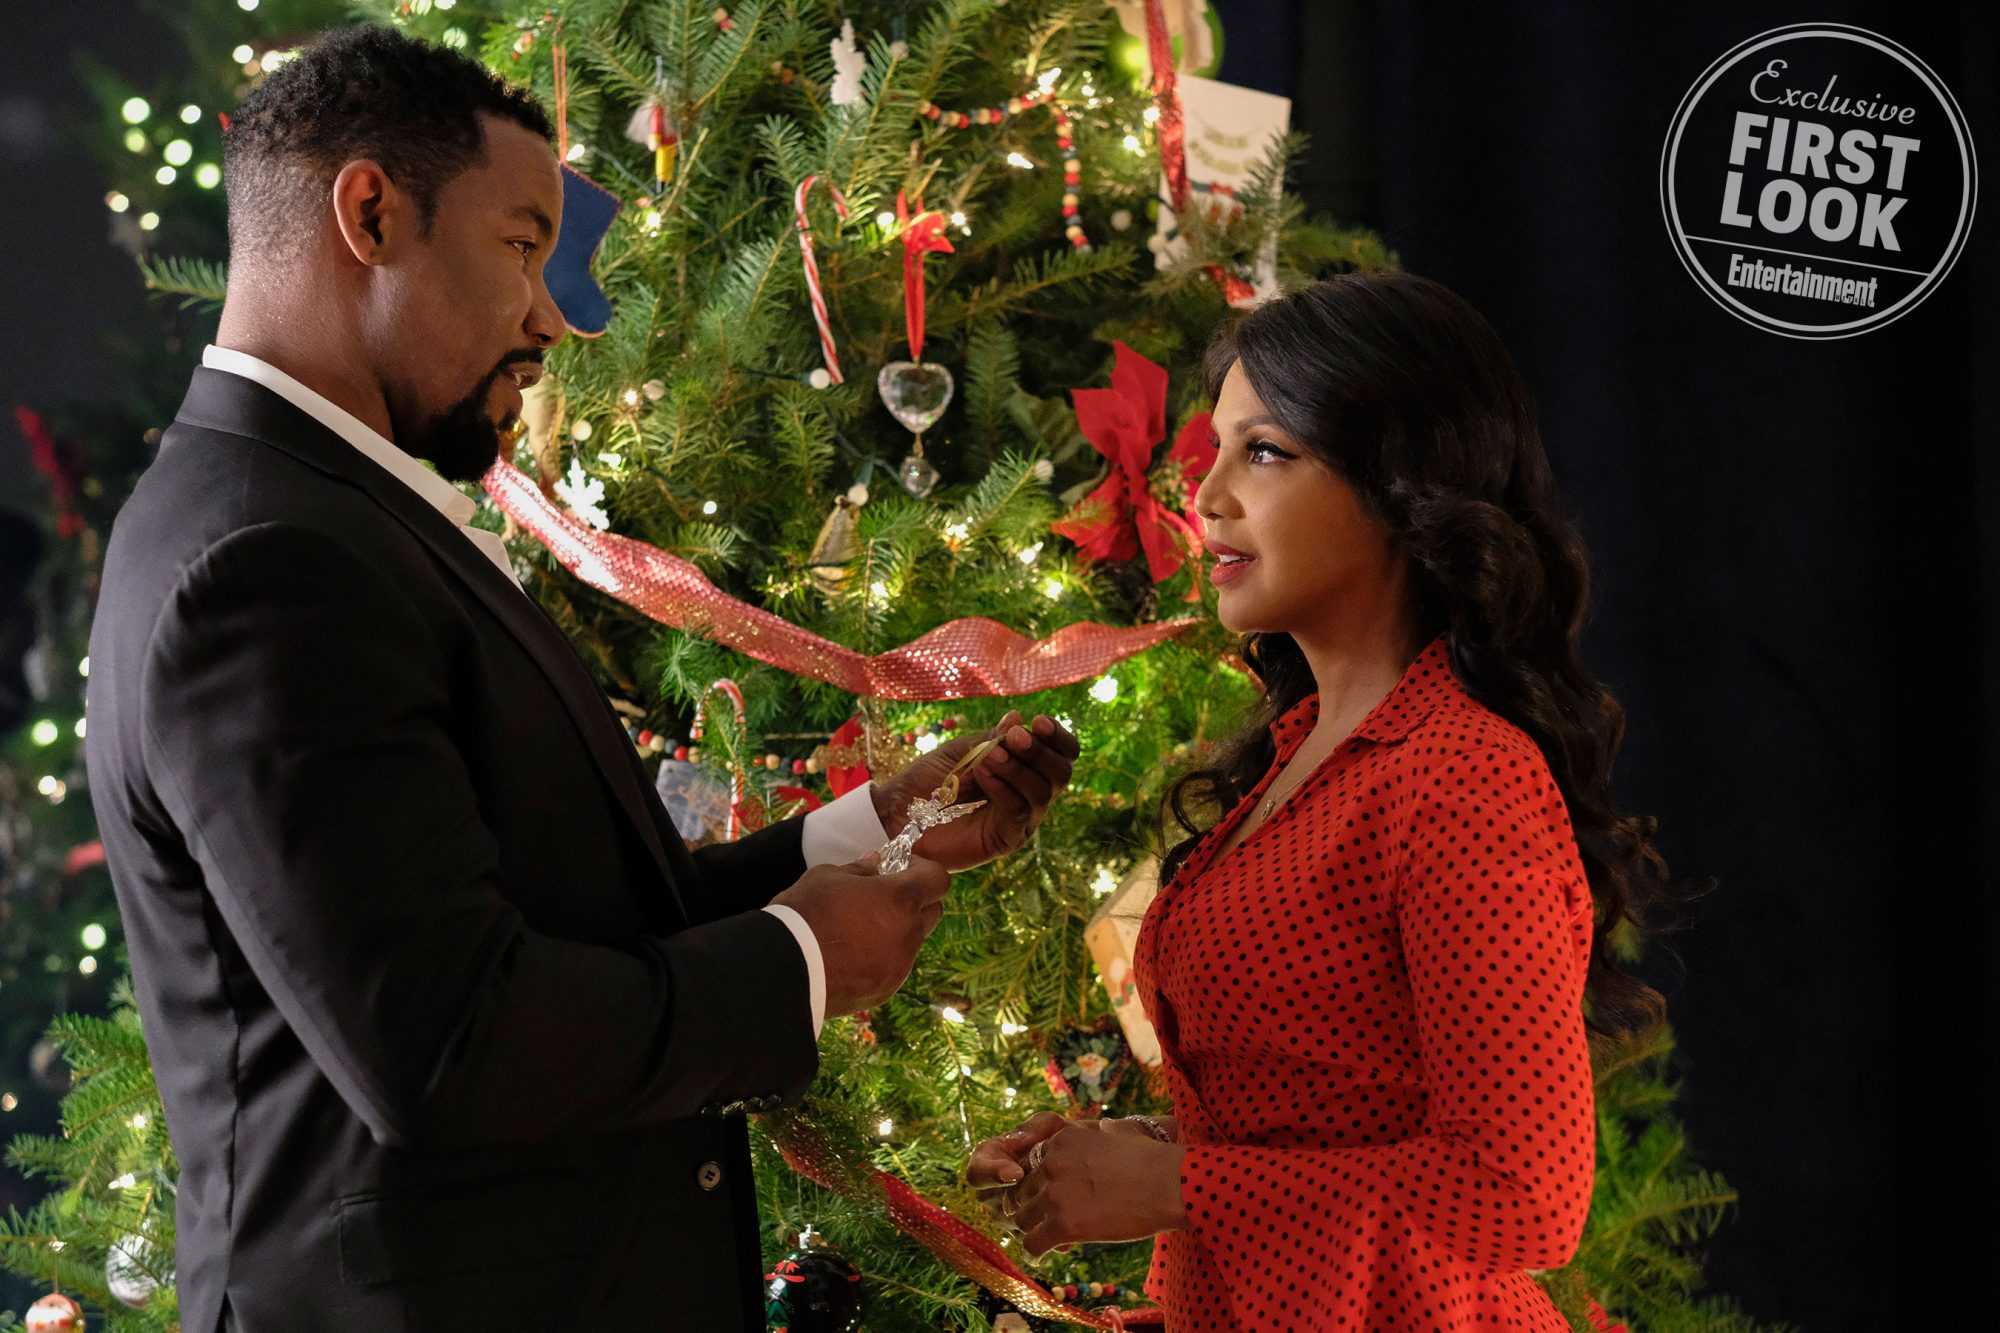 Every Day is Christmas (Nov. 24, 8 p.m. ET/PT on Lifetime)